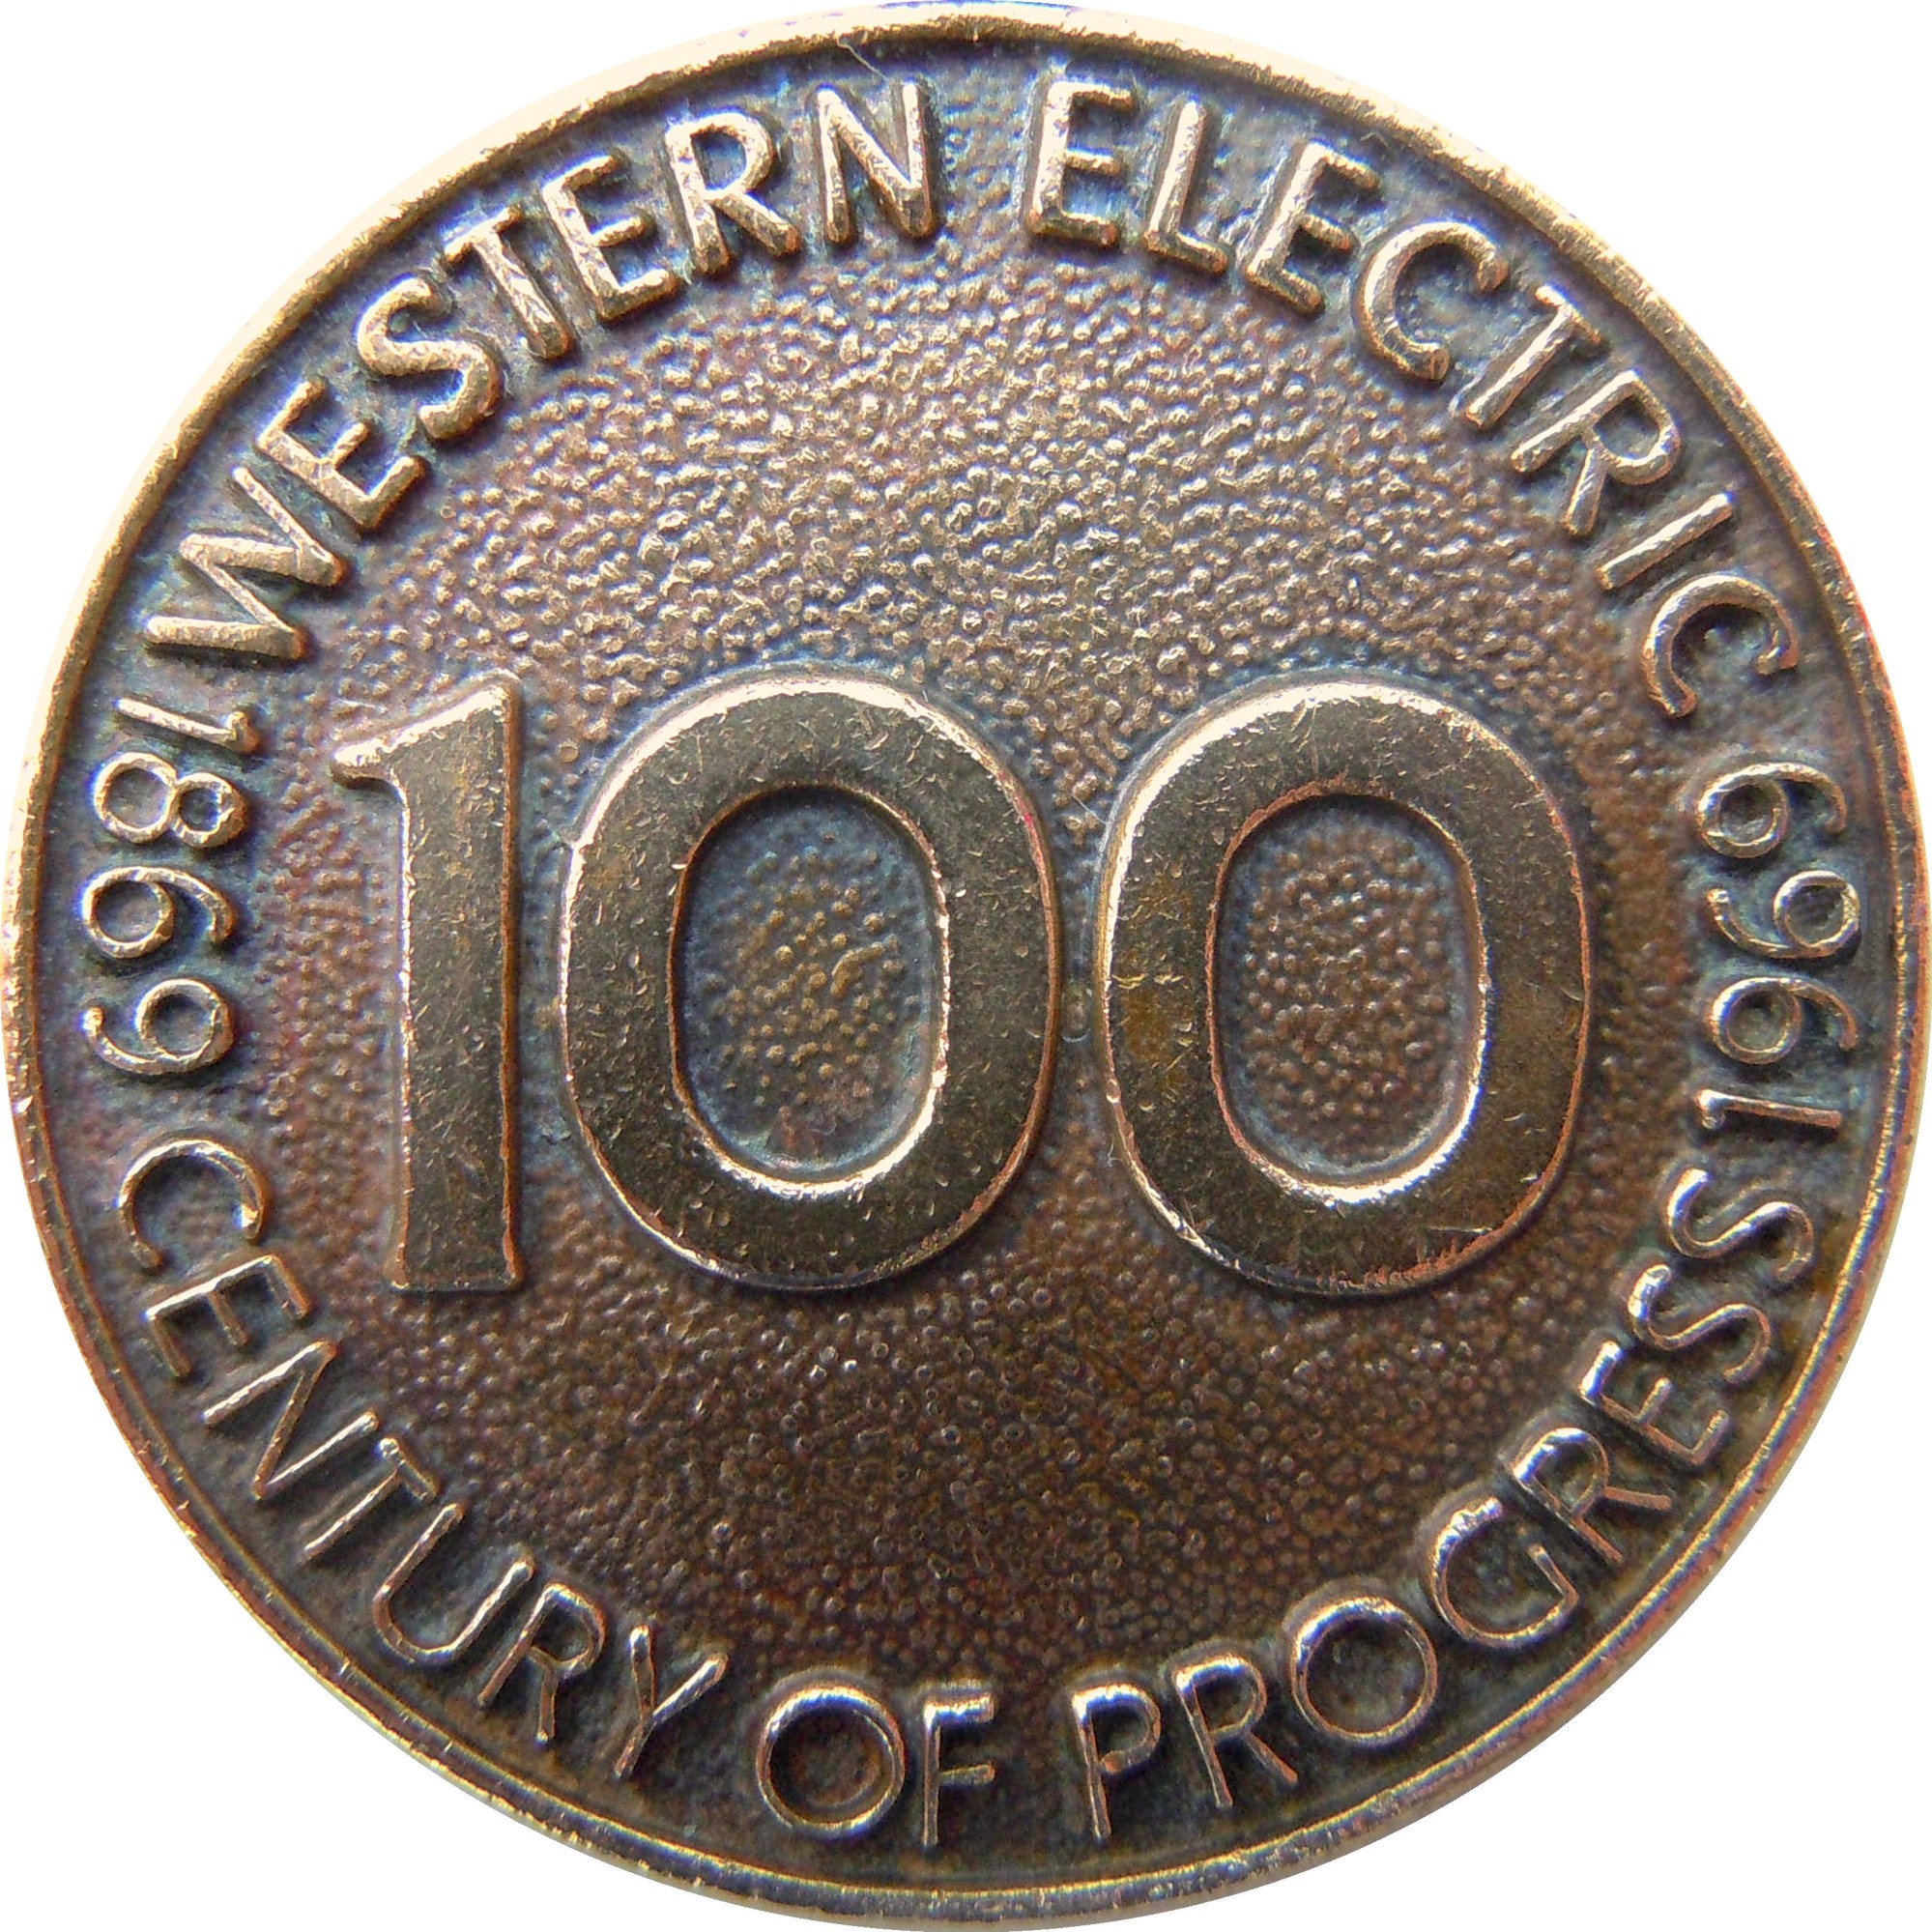 hight resolution of 1969 western electric keychain medallion celebrating the 100th anniversary of the company s founding made from the company s recycled bronze metal of